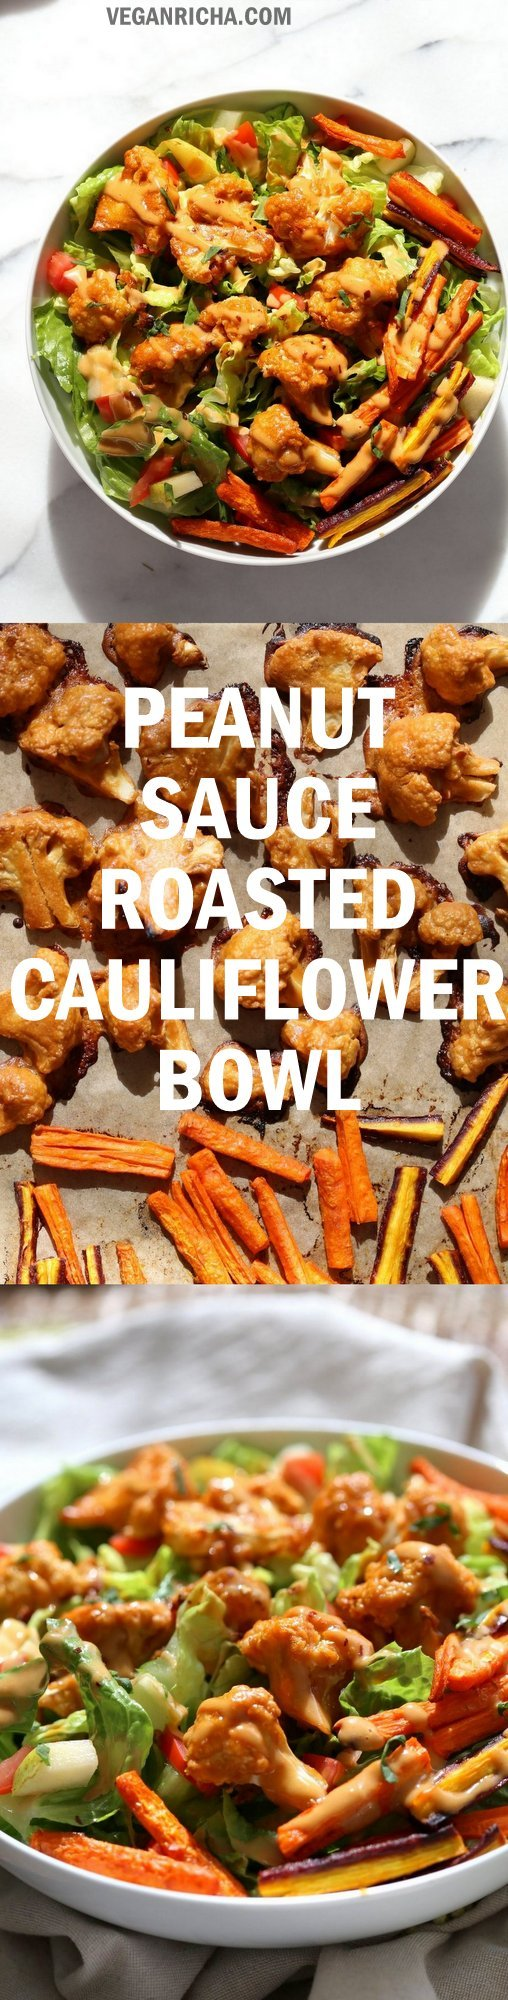 Peanut Butter Cauliflower Bowl with Roasted Carrots. Cauliflower tossed in peanut butter sauce, carrots tossed in hot sauce and roasted. #Vegan #veganricha #Recipe, Nut-free Gluten-free option | VeganRicha.com